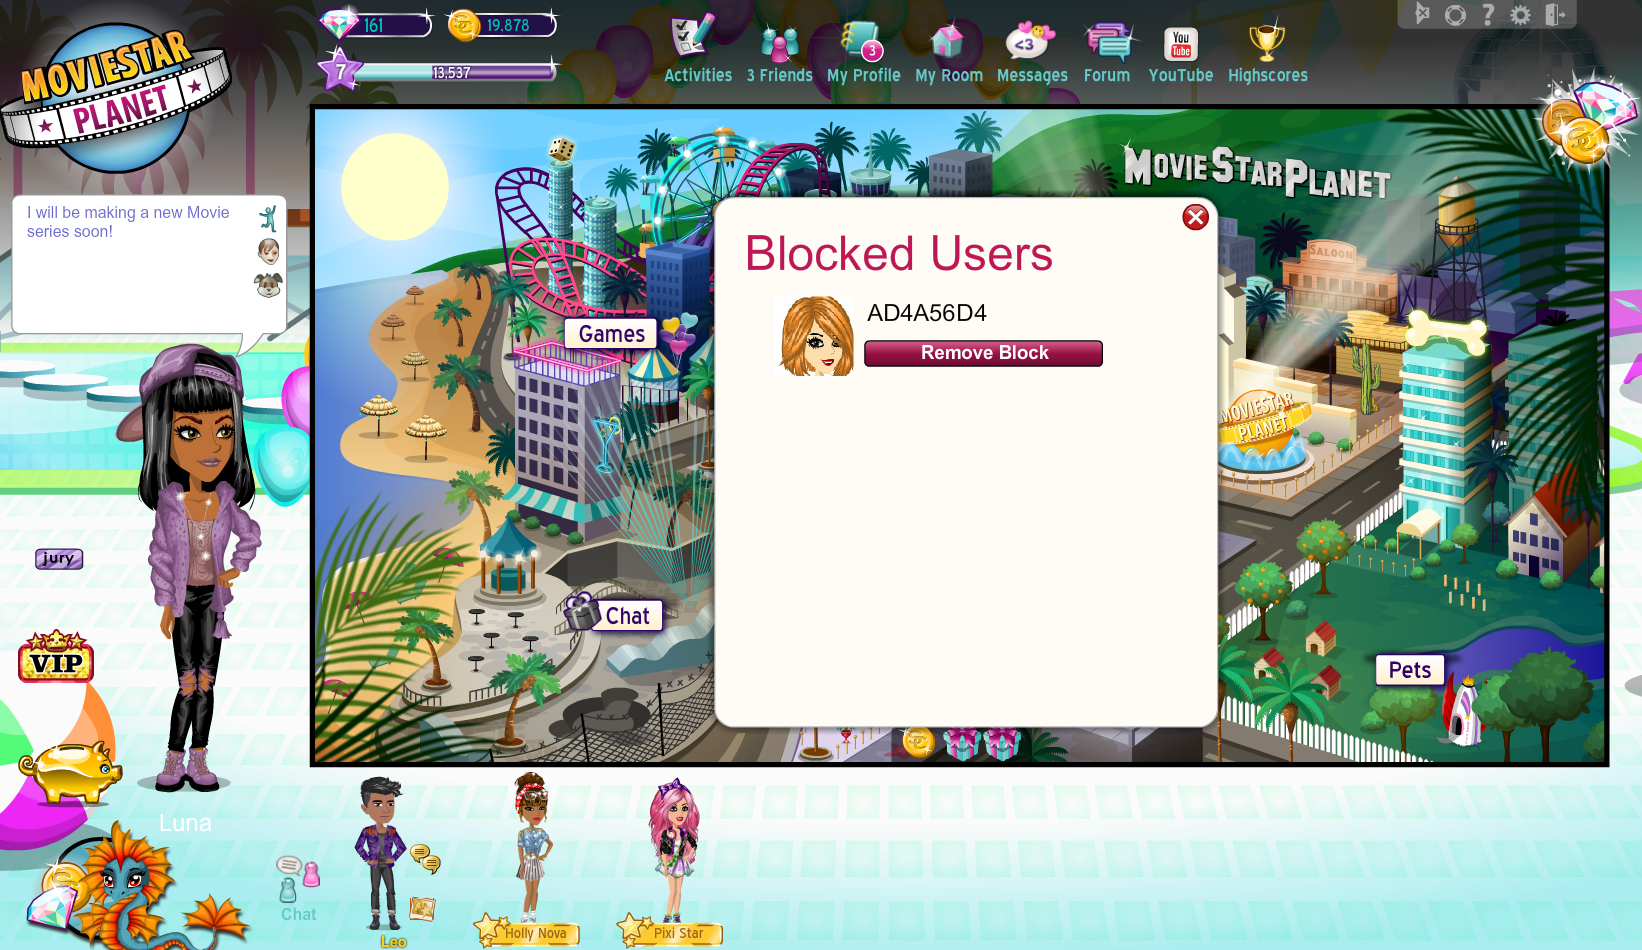 How do I block and unblock users? – MovieStarPlanet